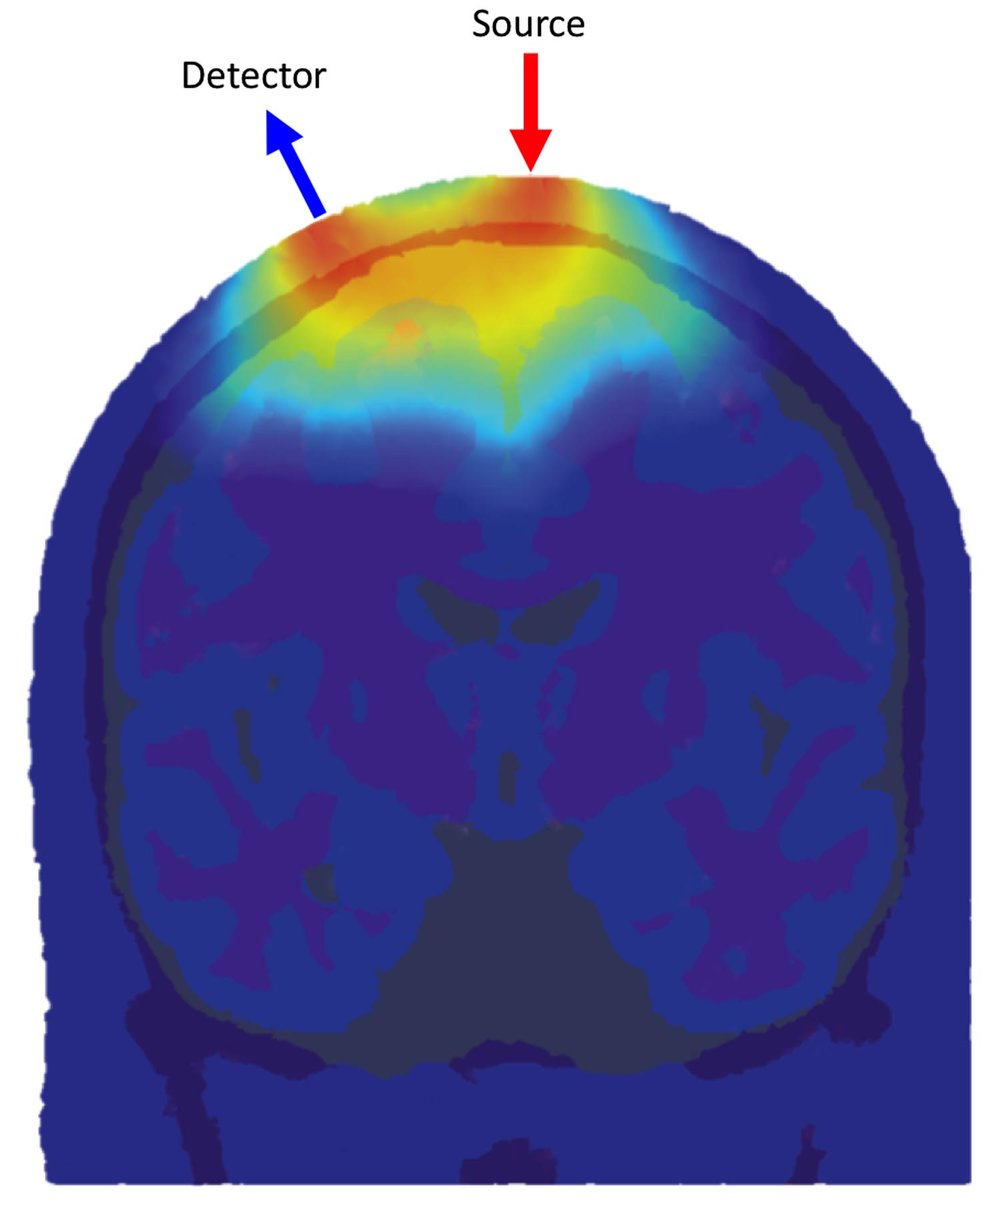 - The distribution of detected photon flight paths through an anatomical head model for one source and one detector location. The greater the density of photon paths, the greater the sensitivity of the fNIRS channel to that location.